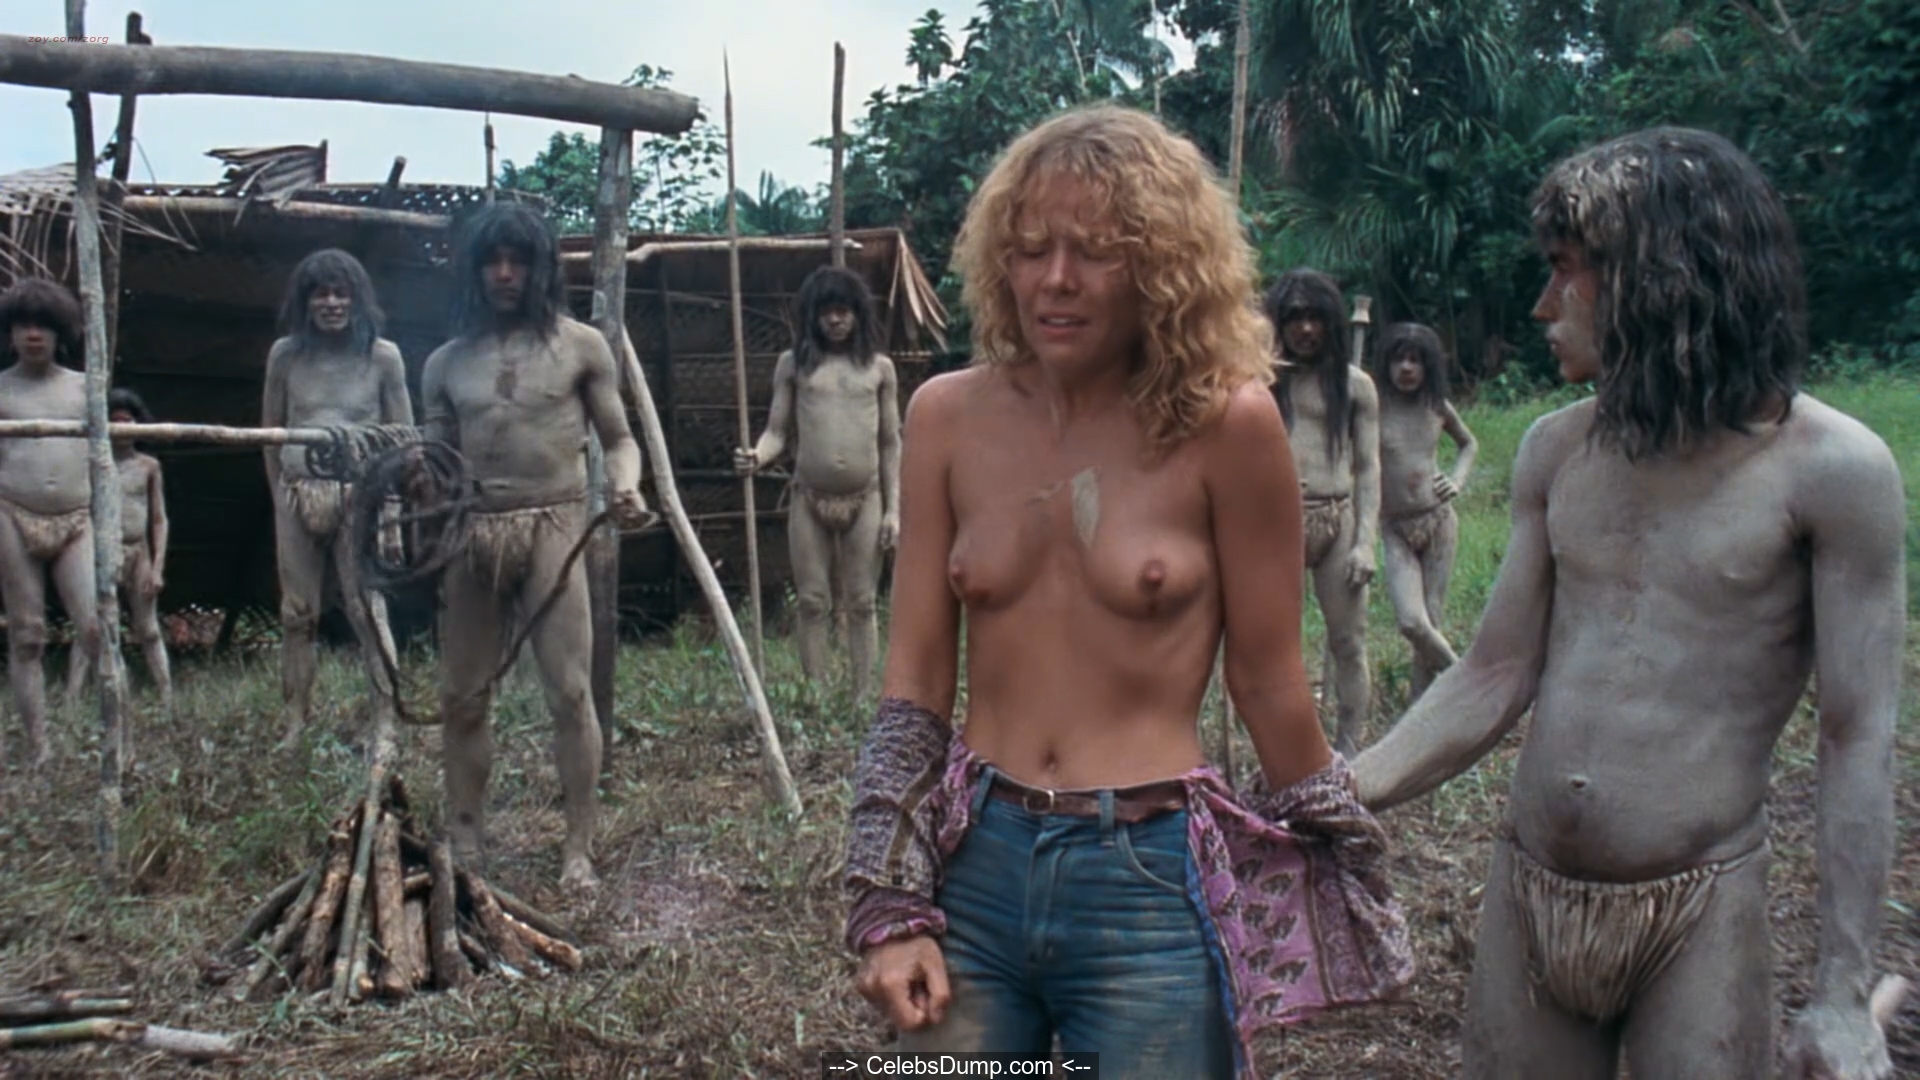 movie-cannibal-nude-scene